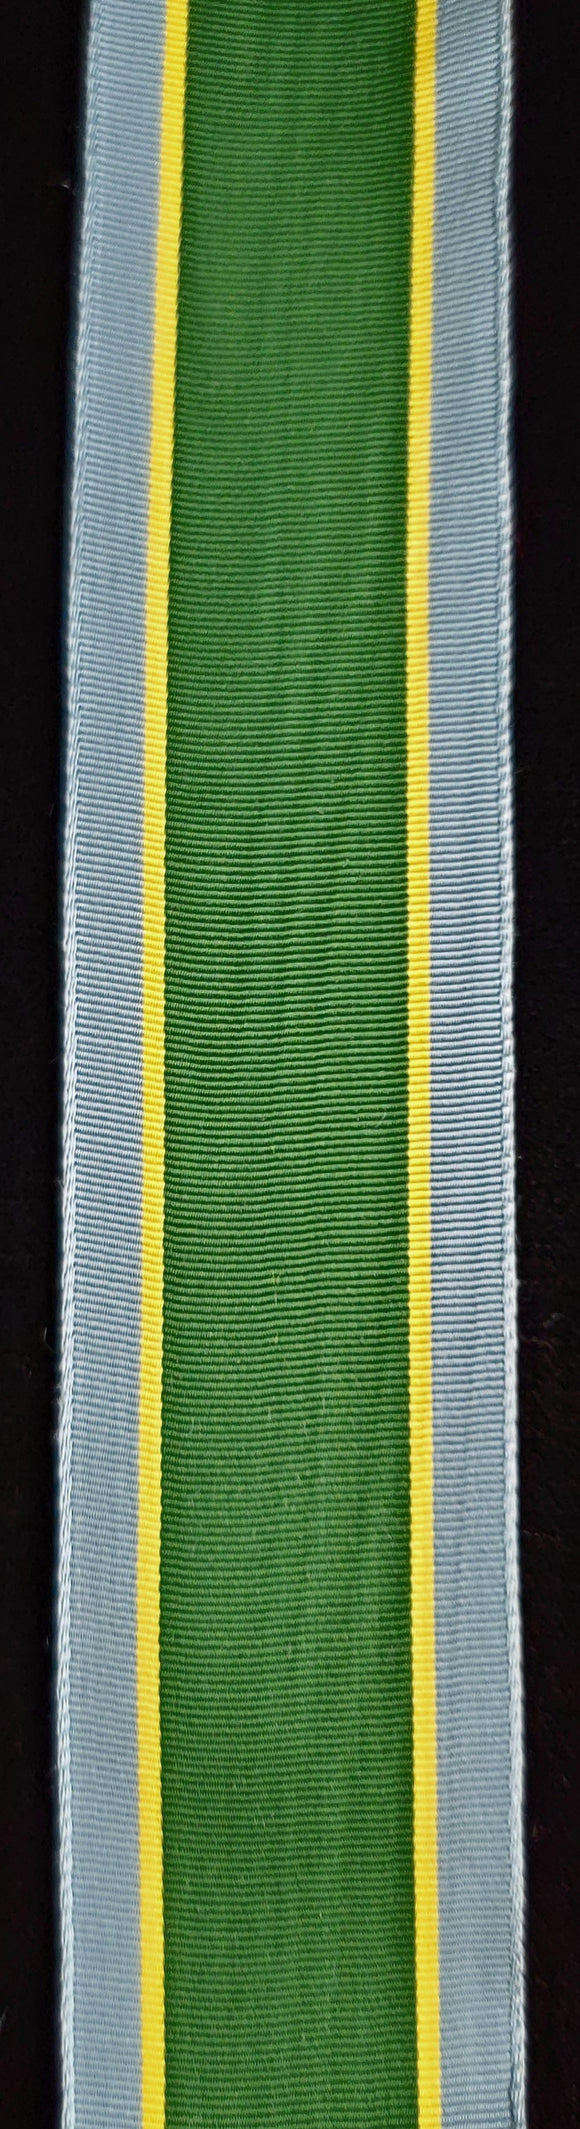 Ribbon, USAF Small Arms Medal